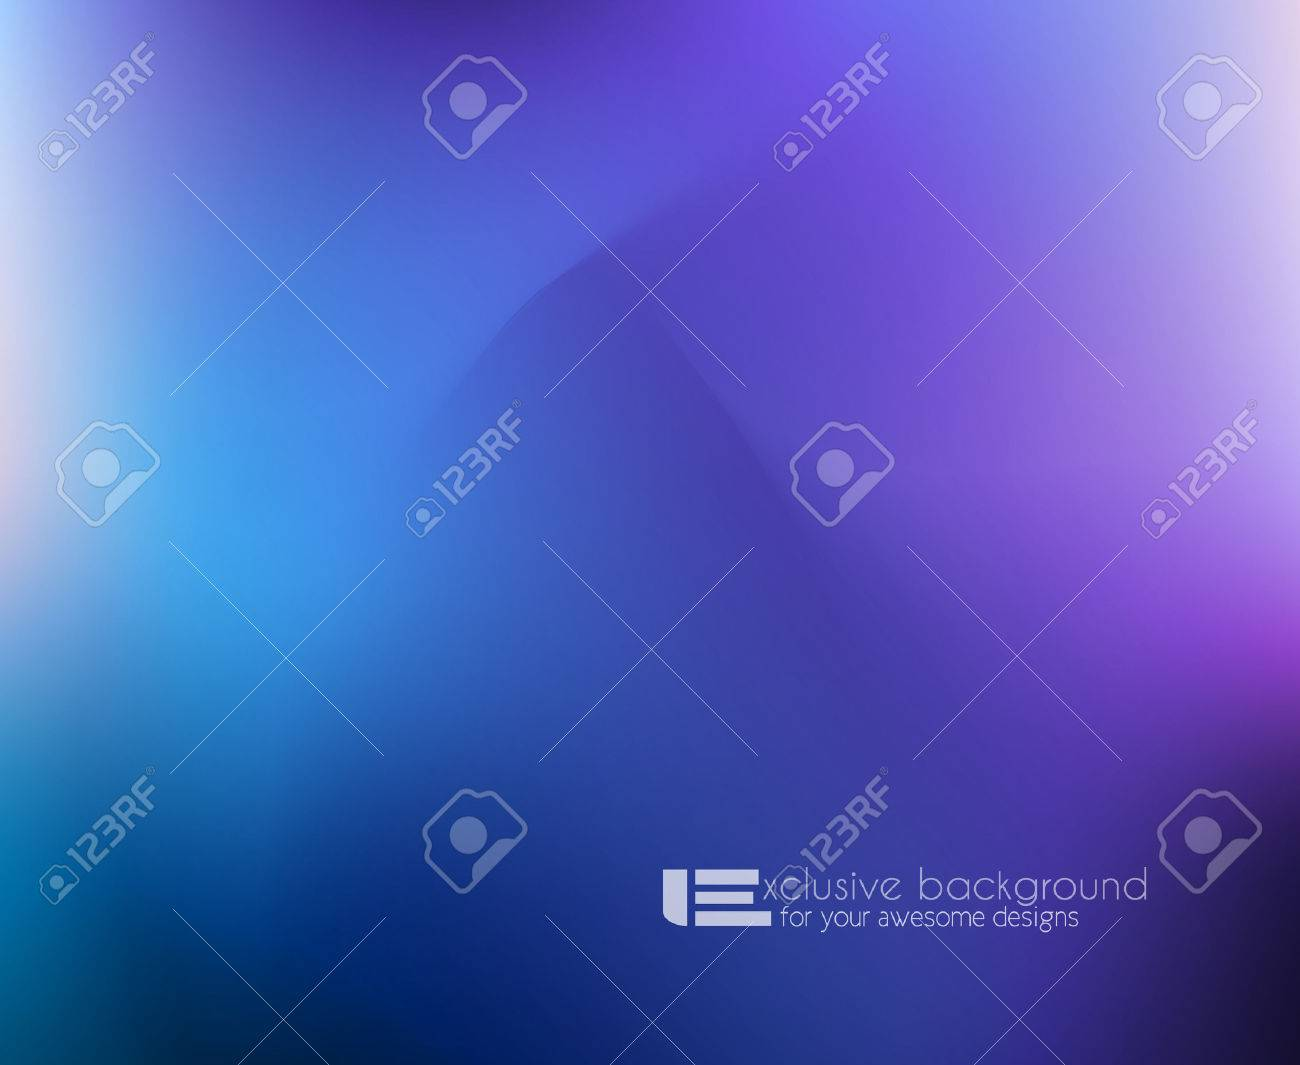 Abstract high tech background for covers or business cards. Stock Vector - 22785828